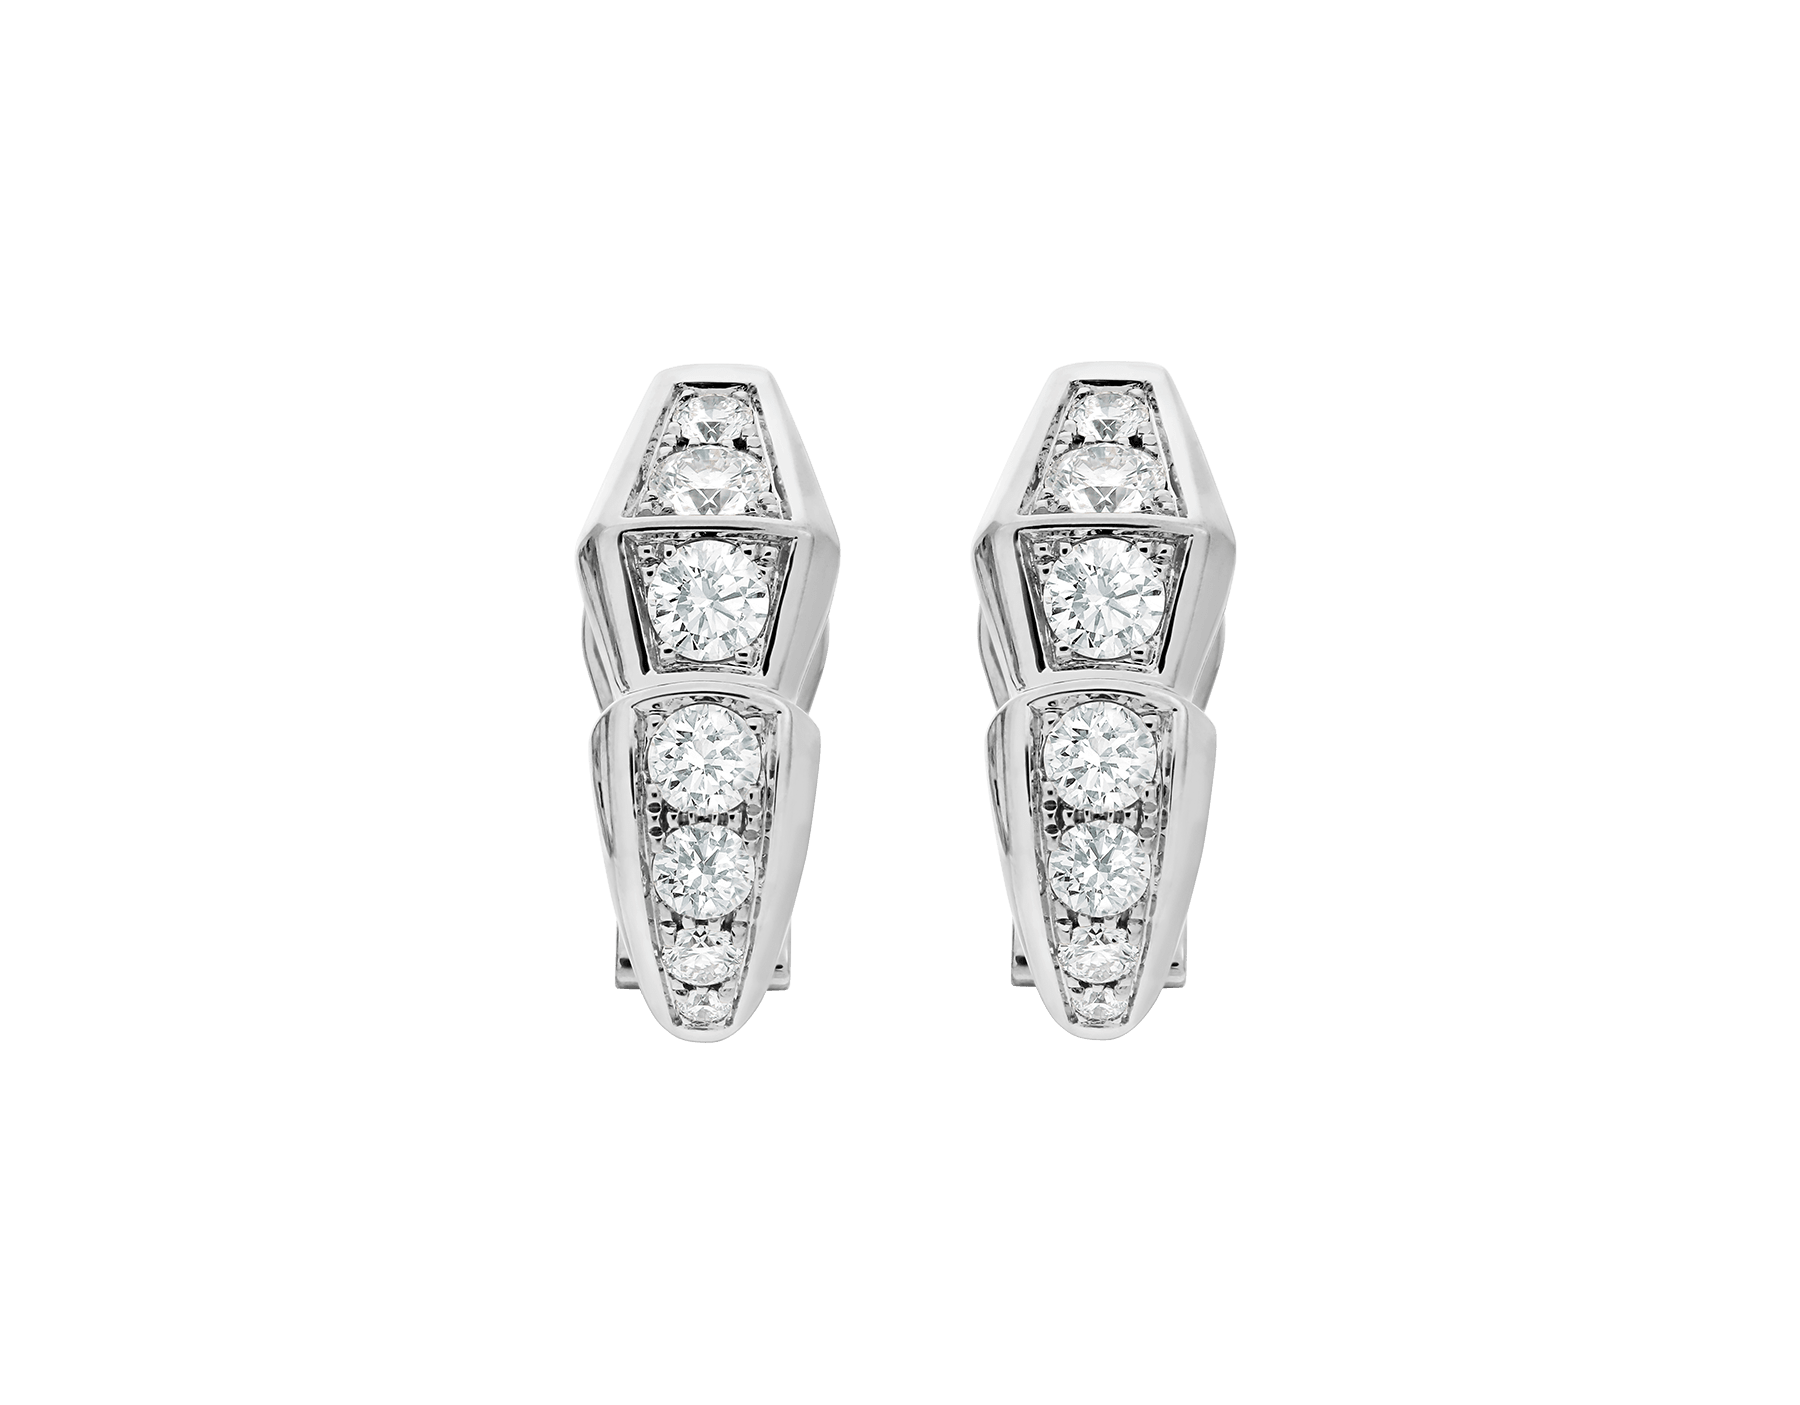 Serpenti slim earrings in 18 kt white gold, set with full pavé diamonds. 351426 image 1